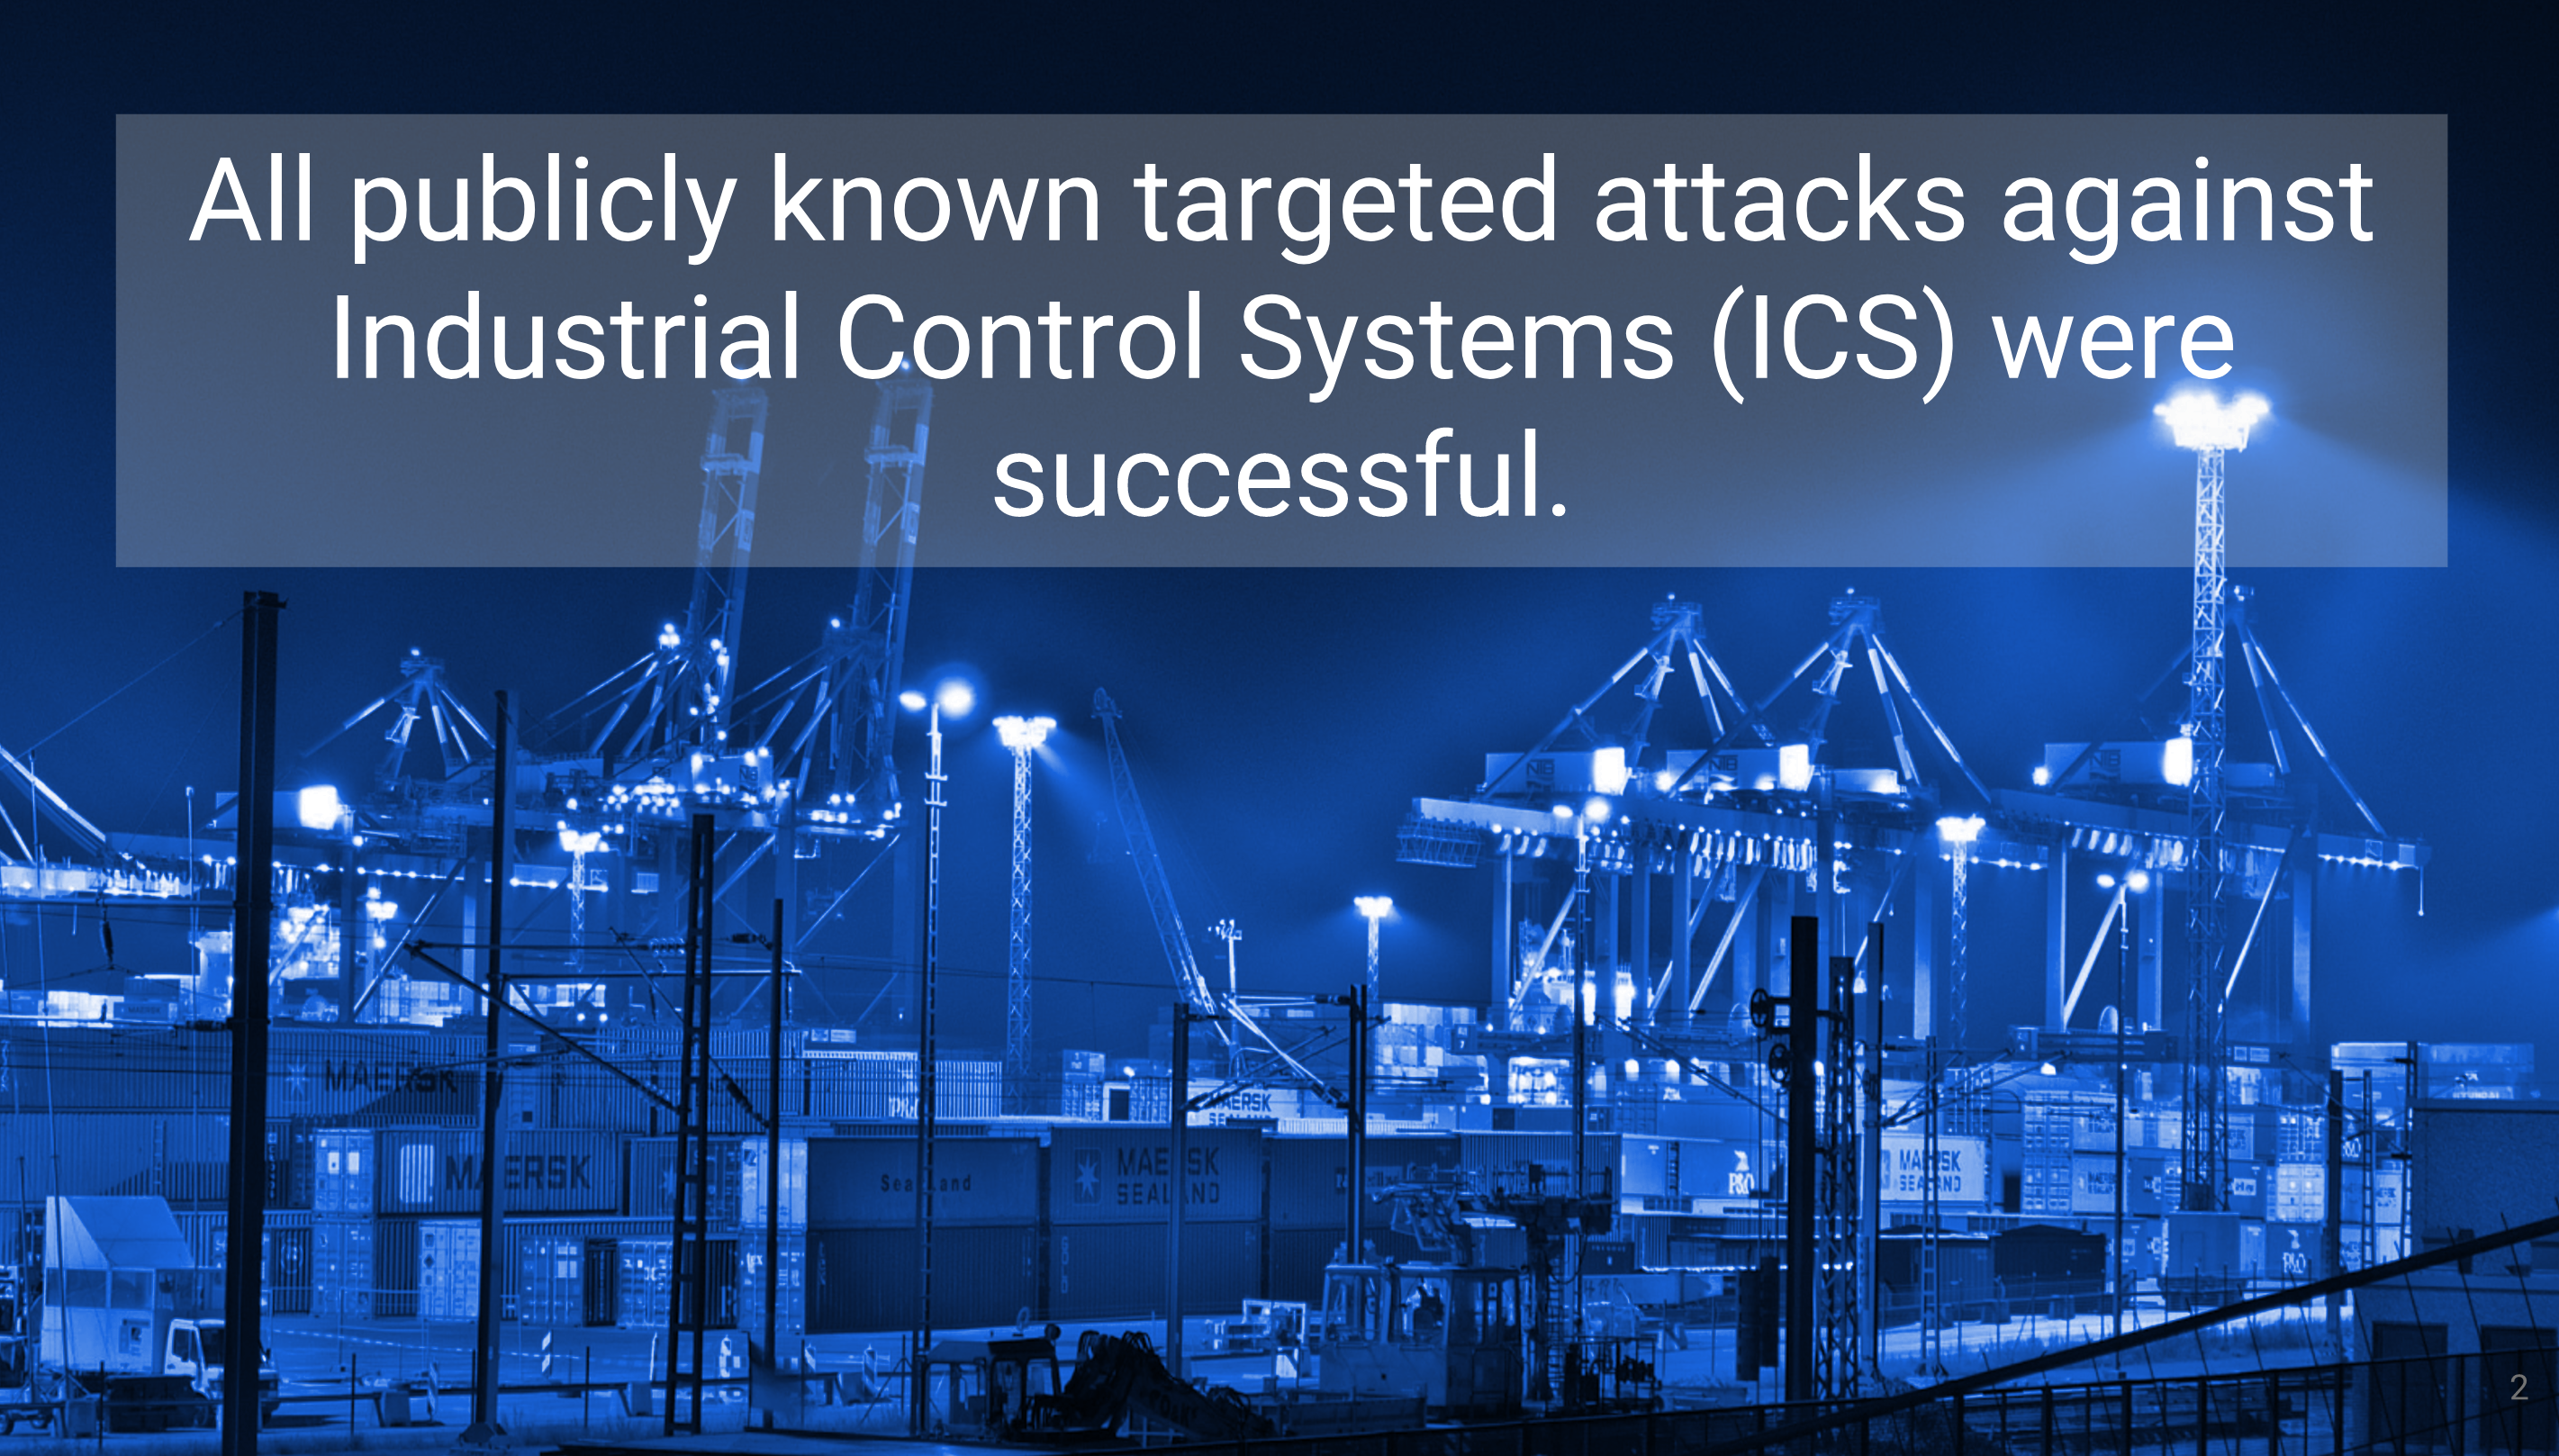 All publicly known targeted attacks against Industrial Control Systems (ICS) were successful.